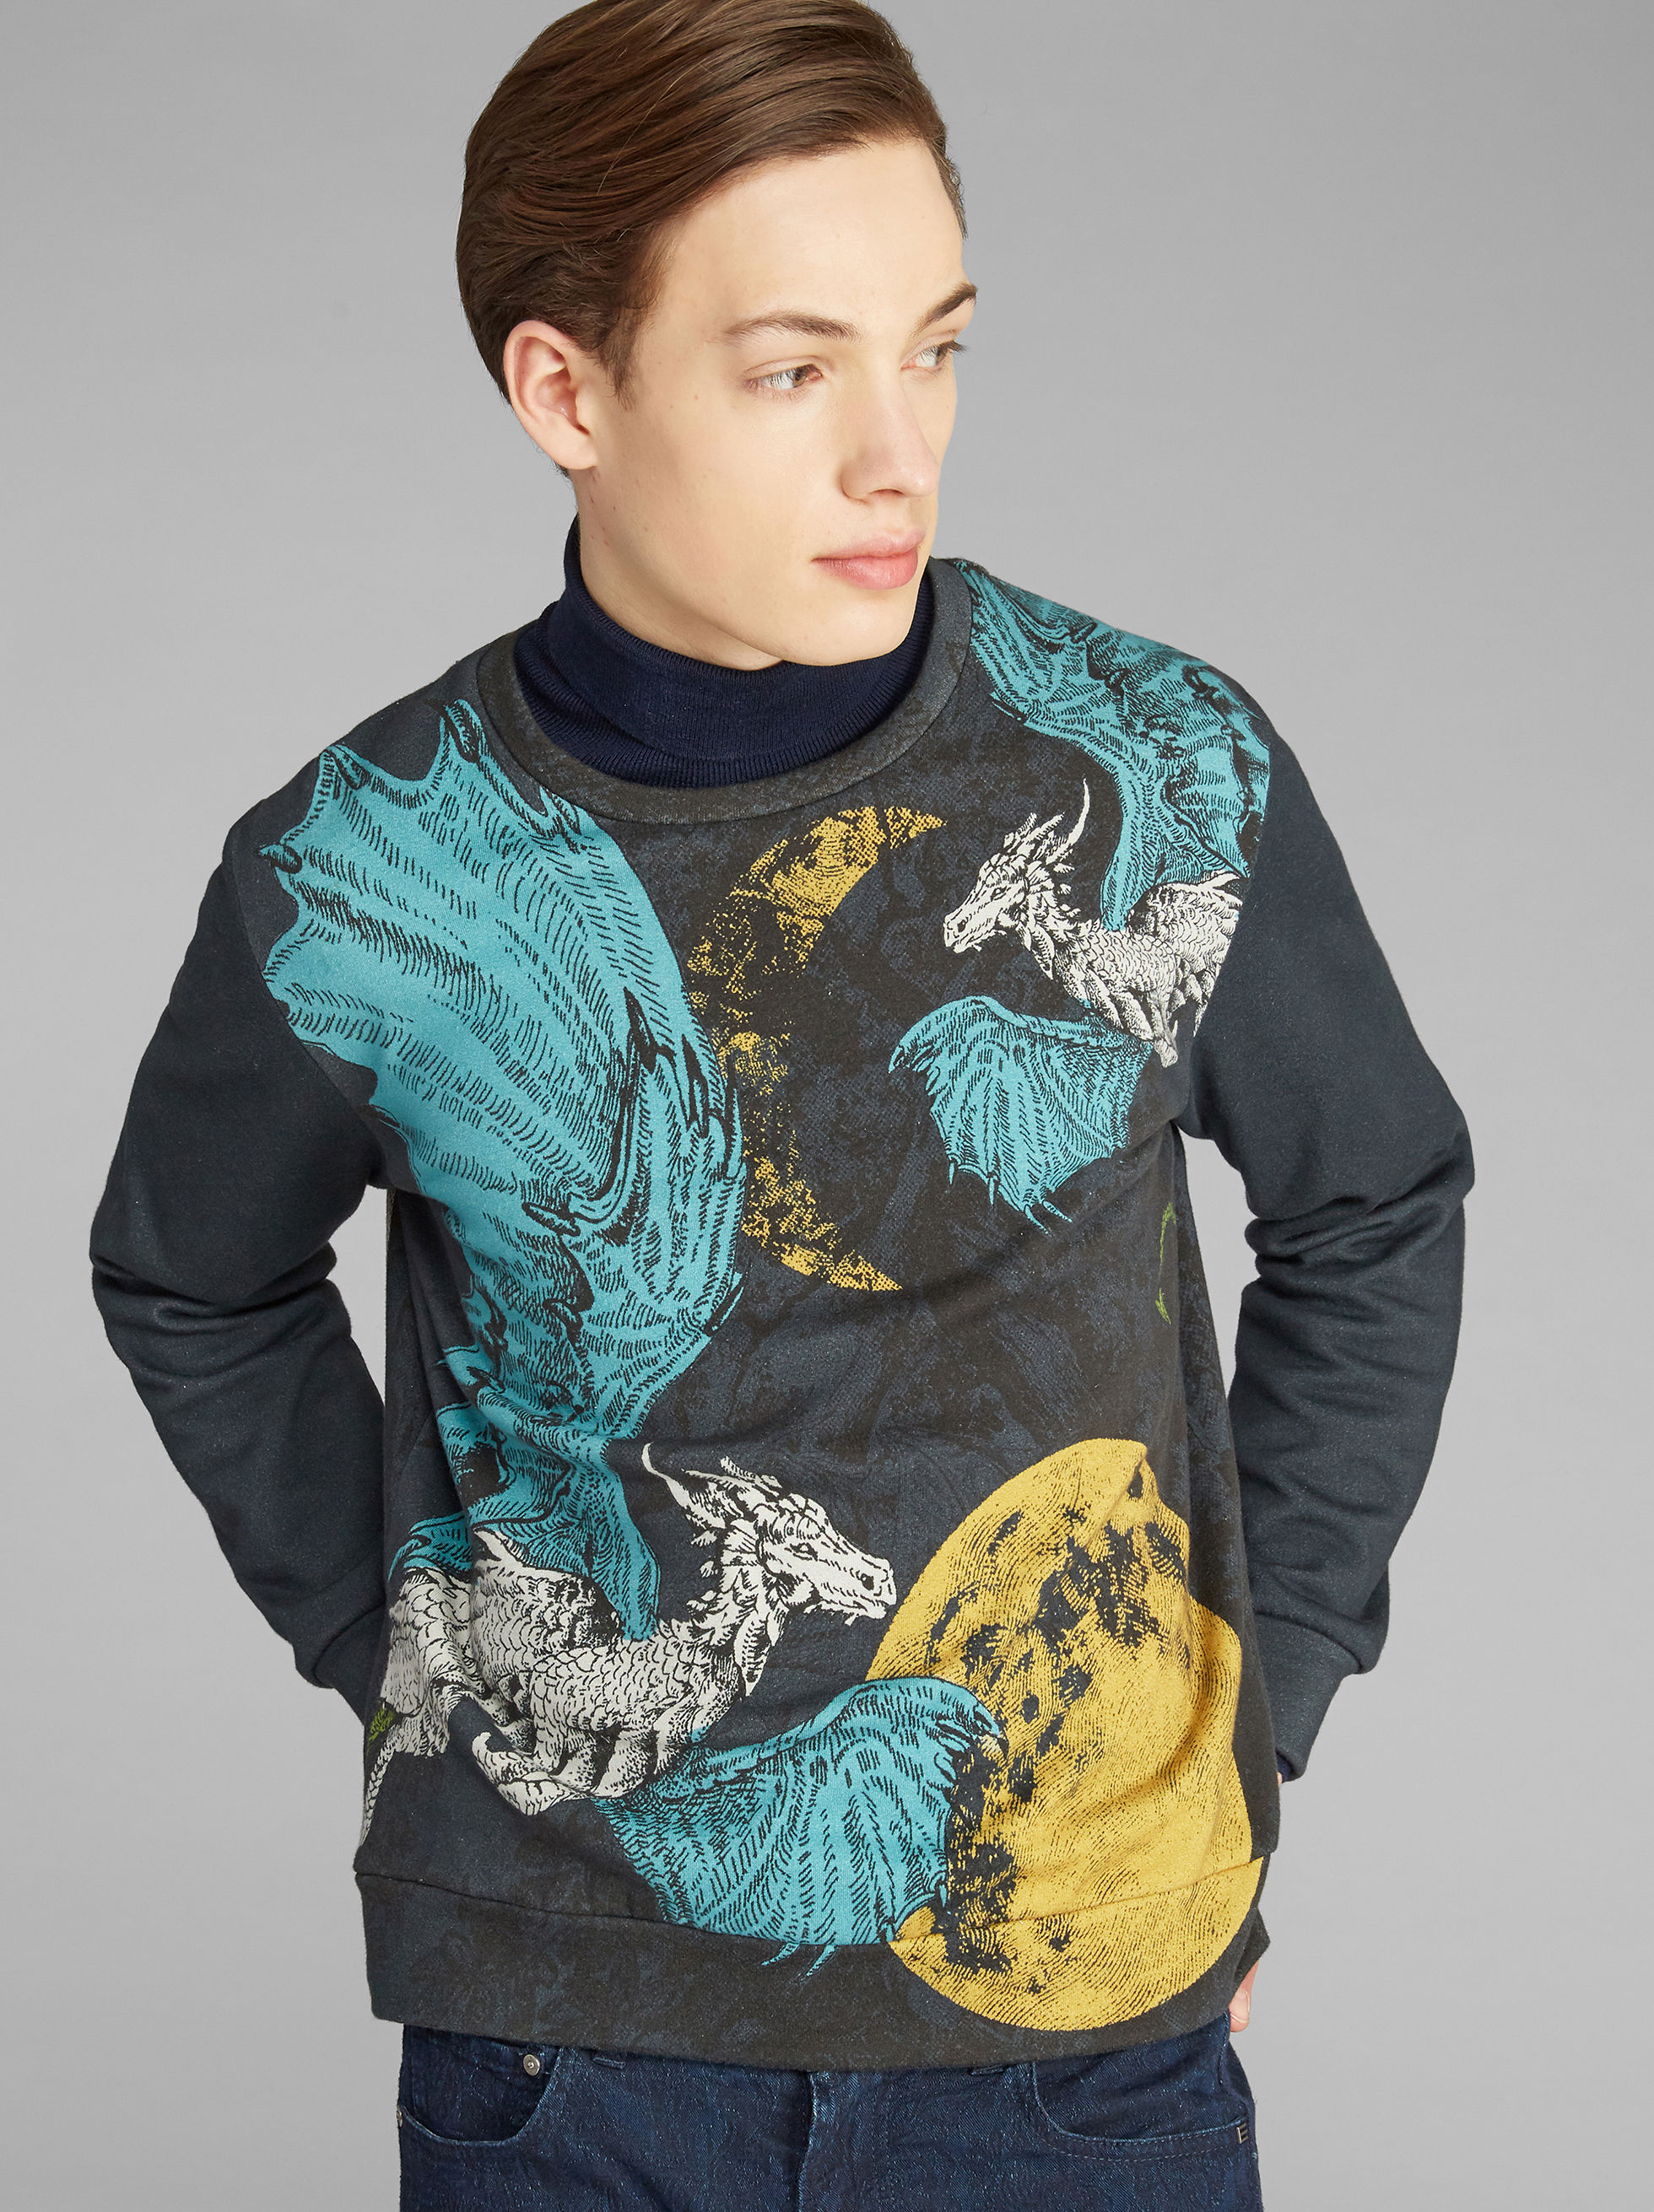 DRAGON-PRINT SWEATSHIRT